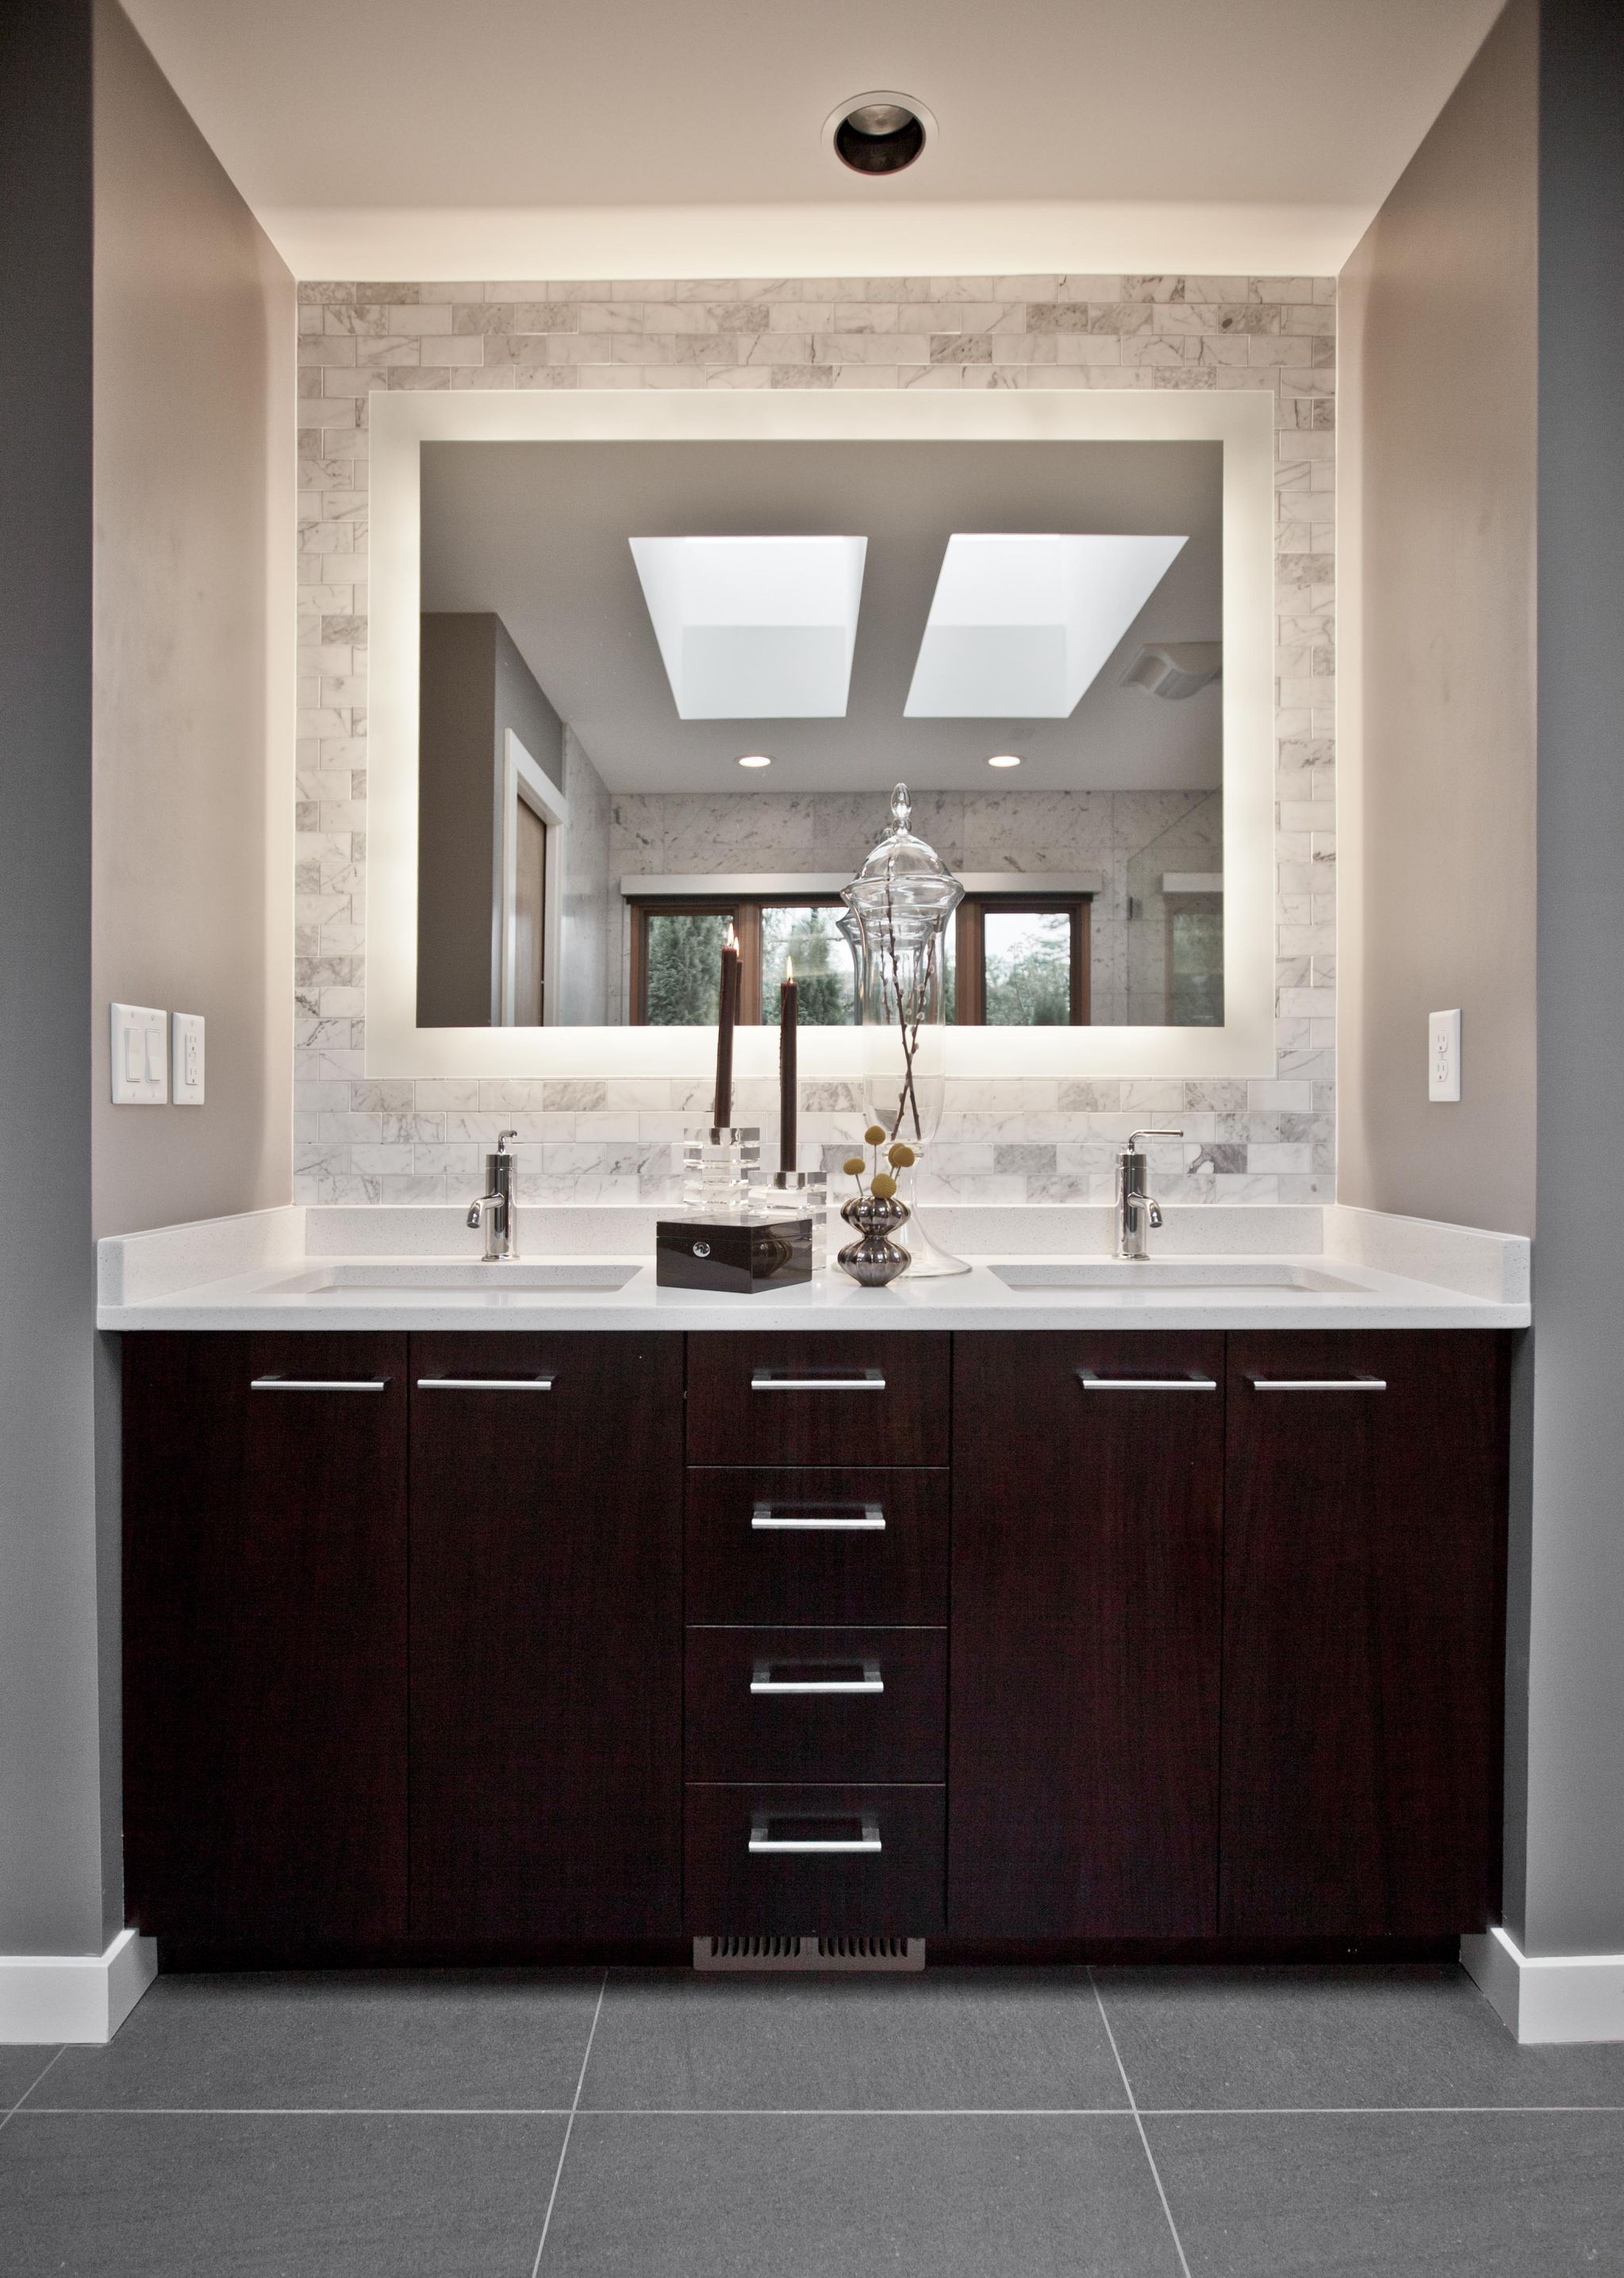 Alluring Cabinet Using Double Sinks and Faucets For Decorating Small Bathroom